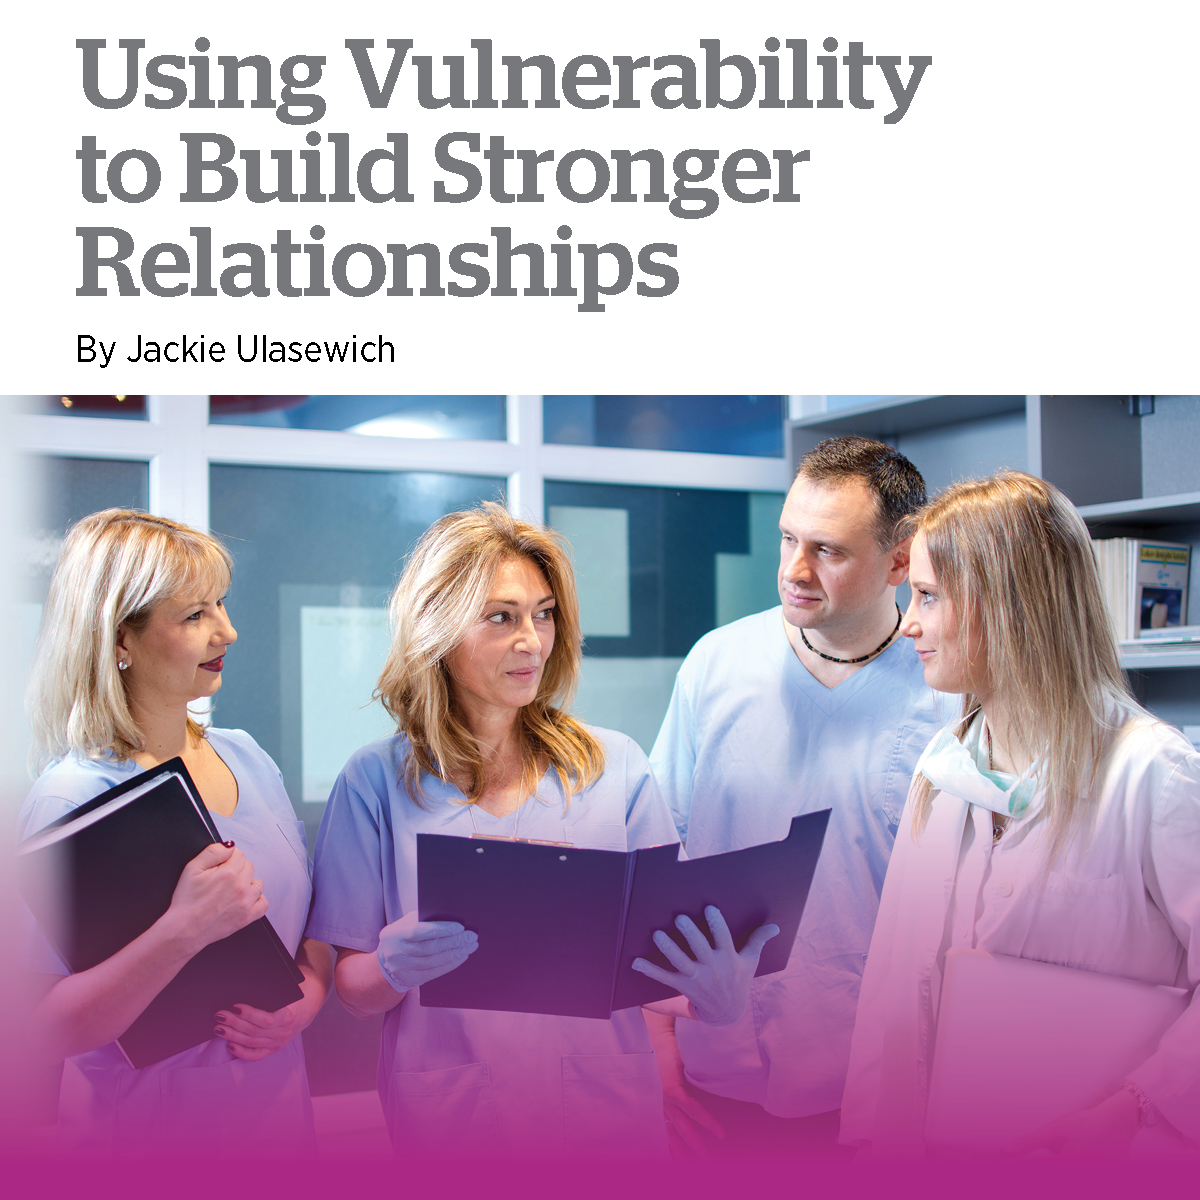 Using Vulnerability to Build Stronger Relationships